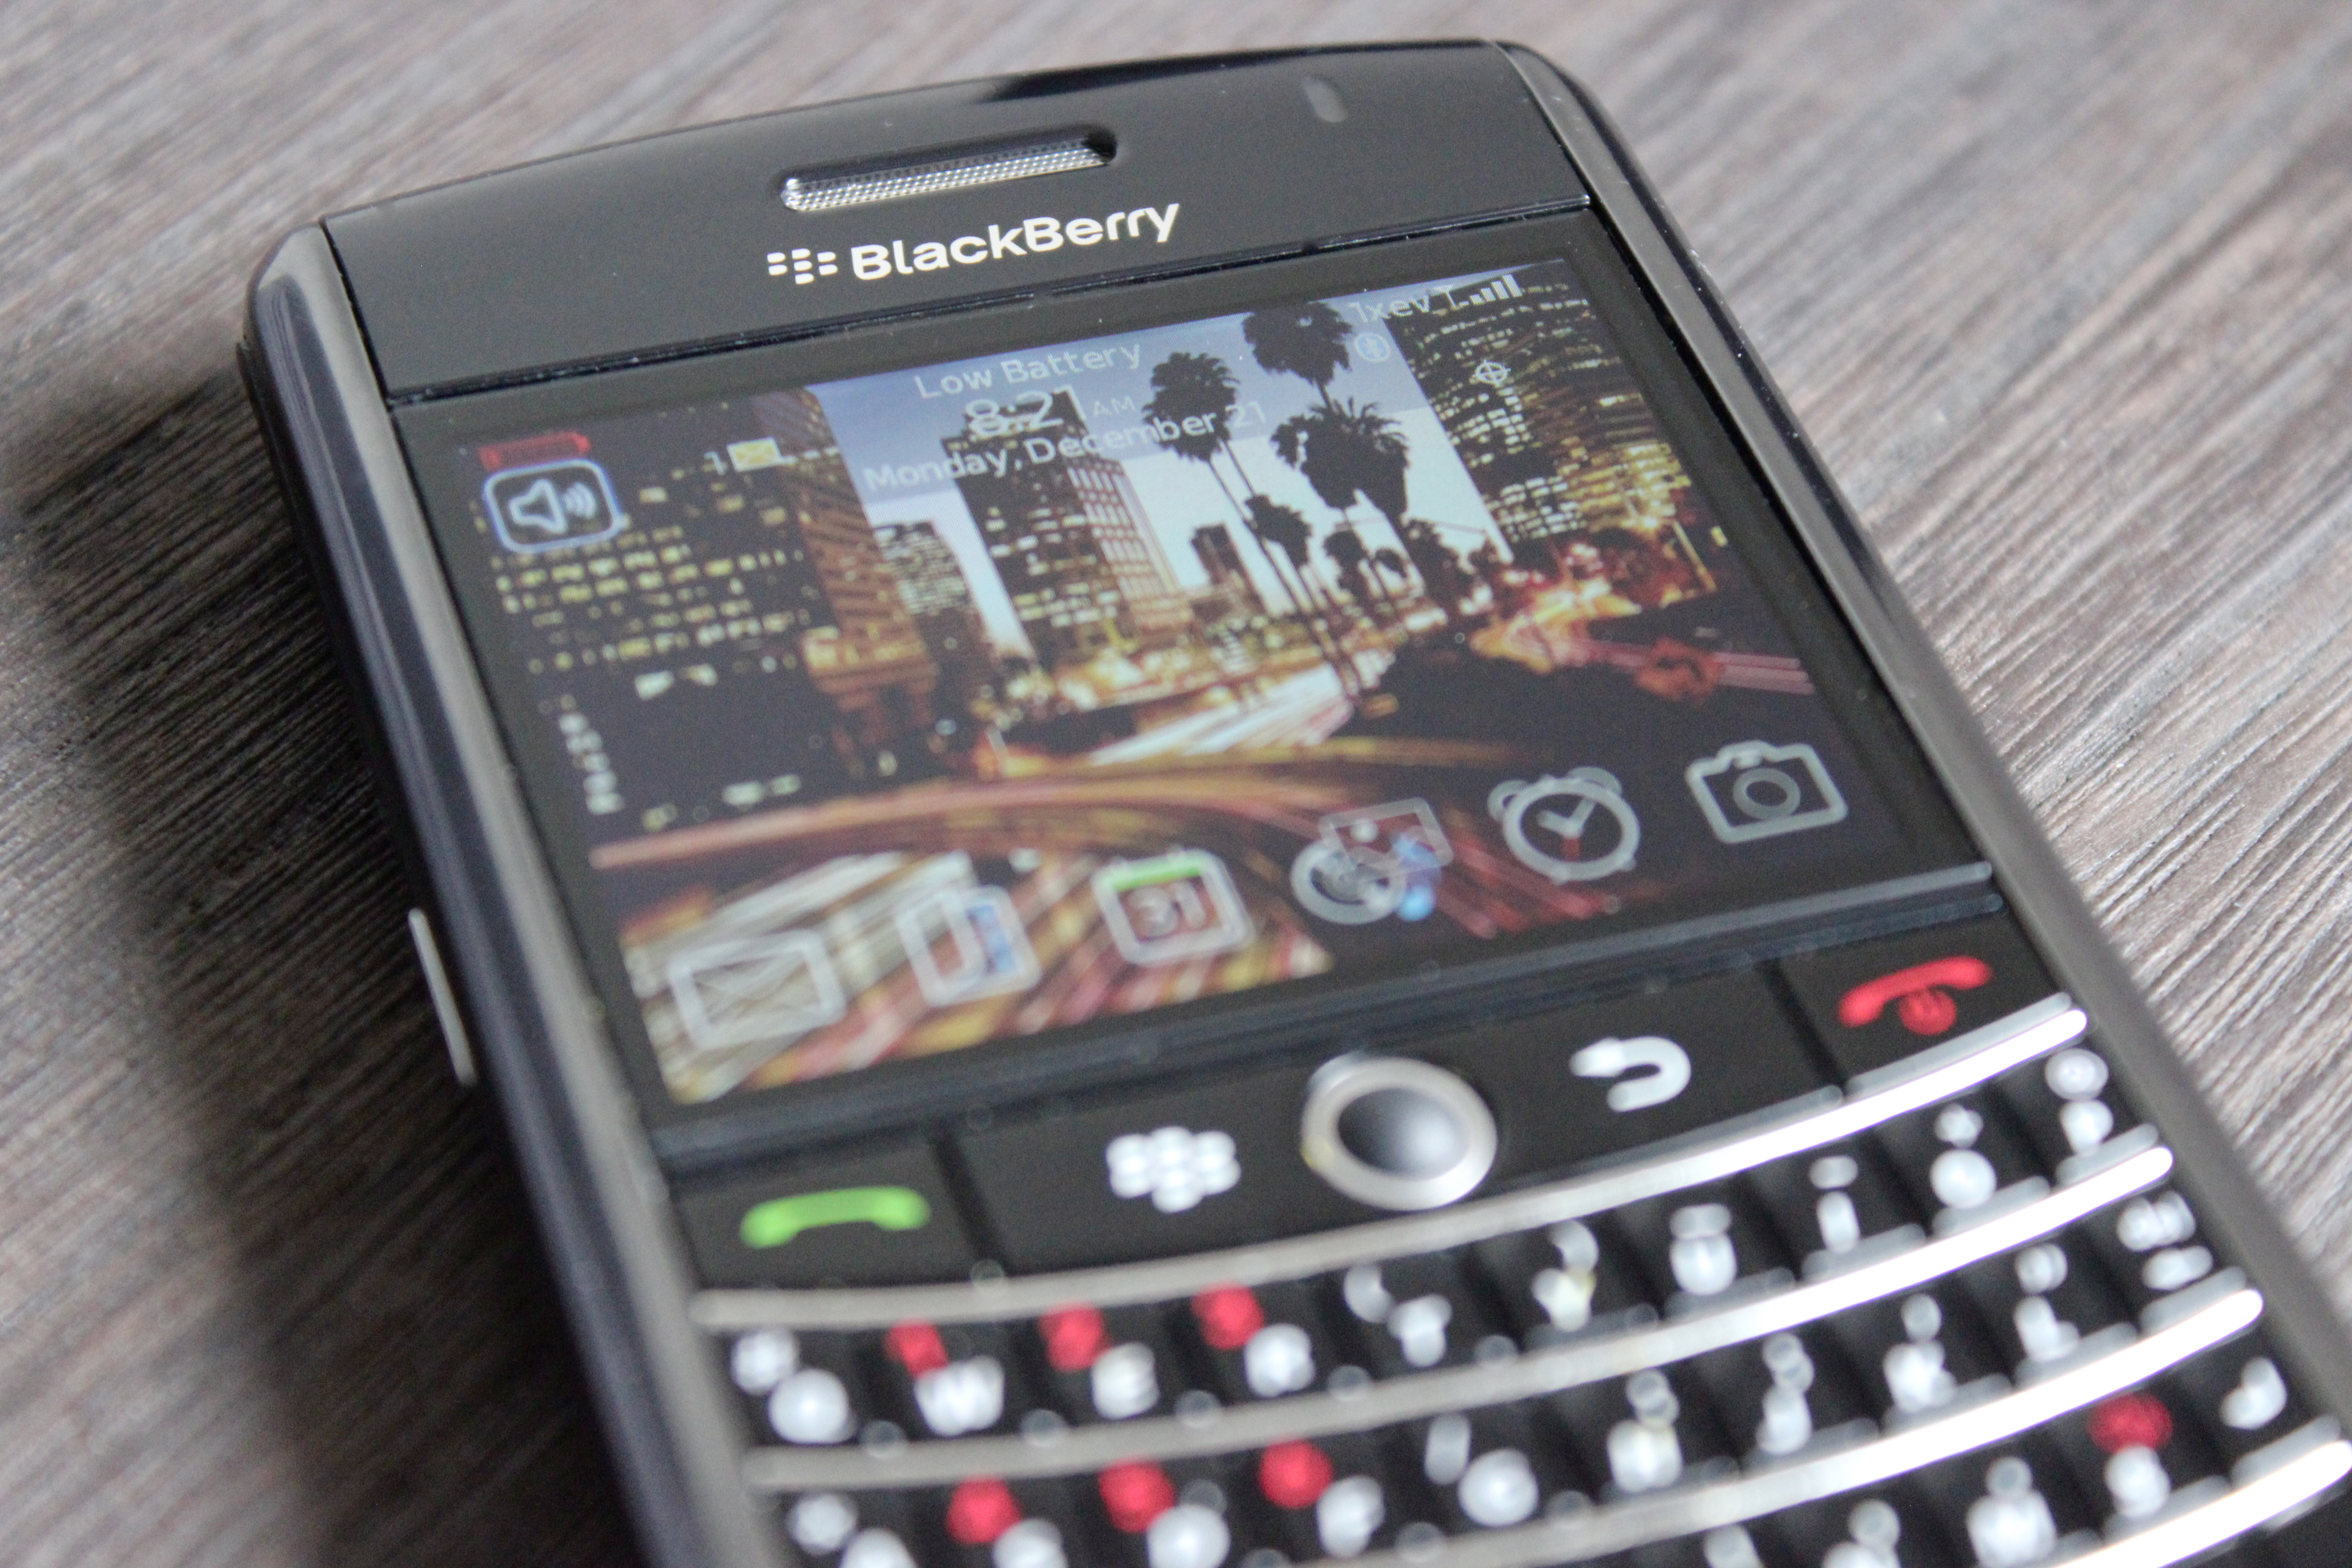 Bhow to fix a blackberry phone battery that won t charge